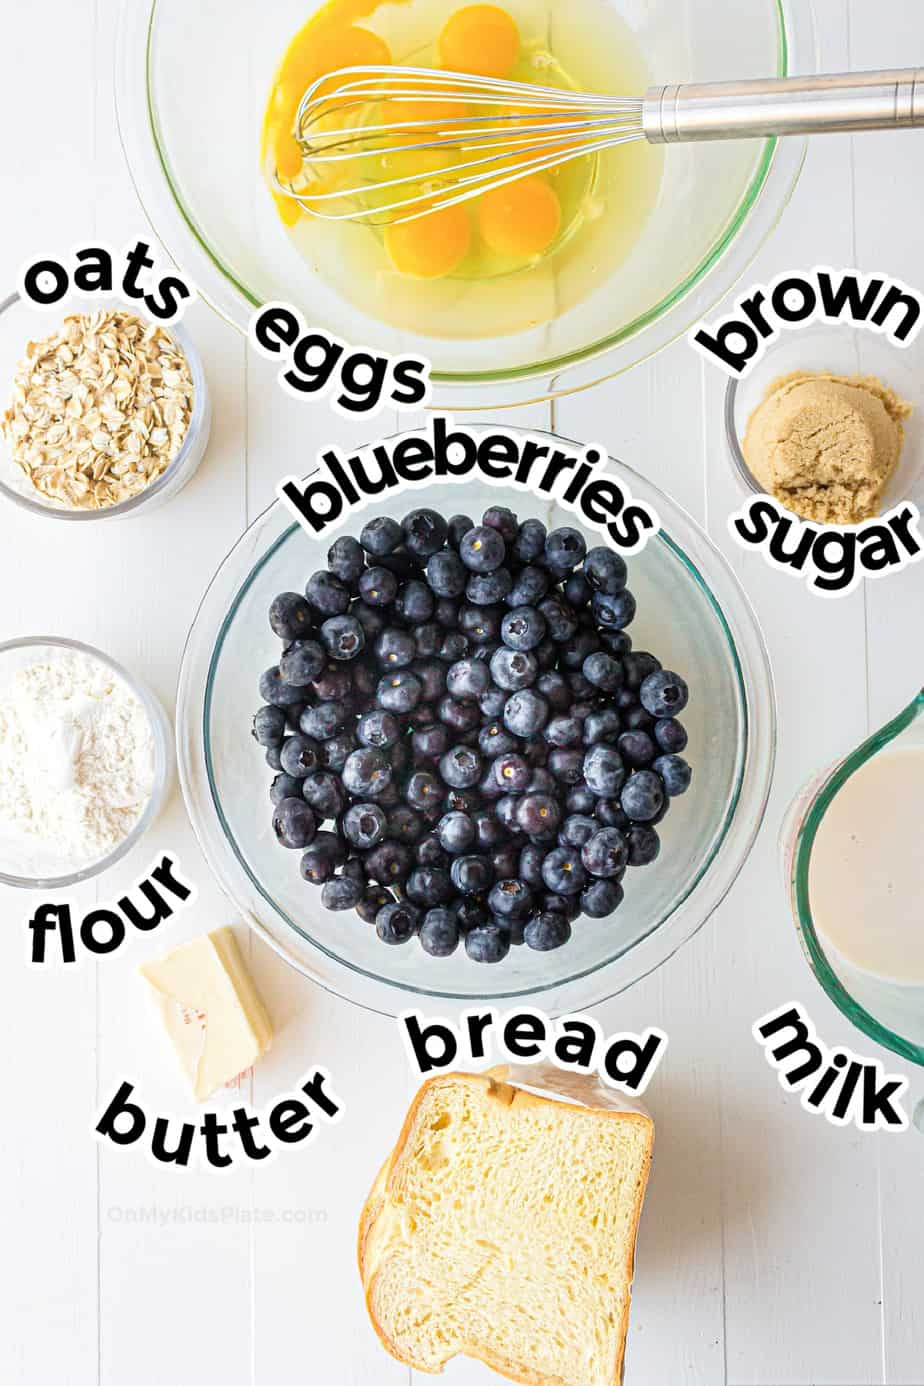 Ingredients for blueberry french toast casserole from overhead